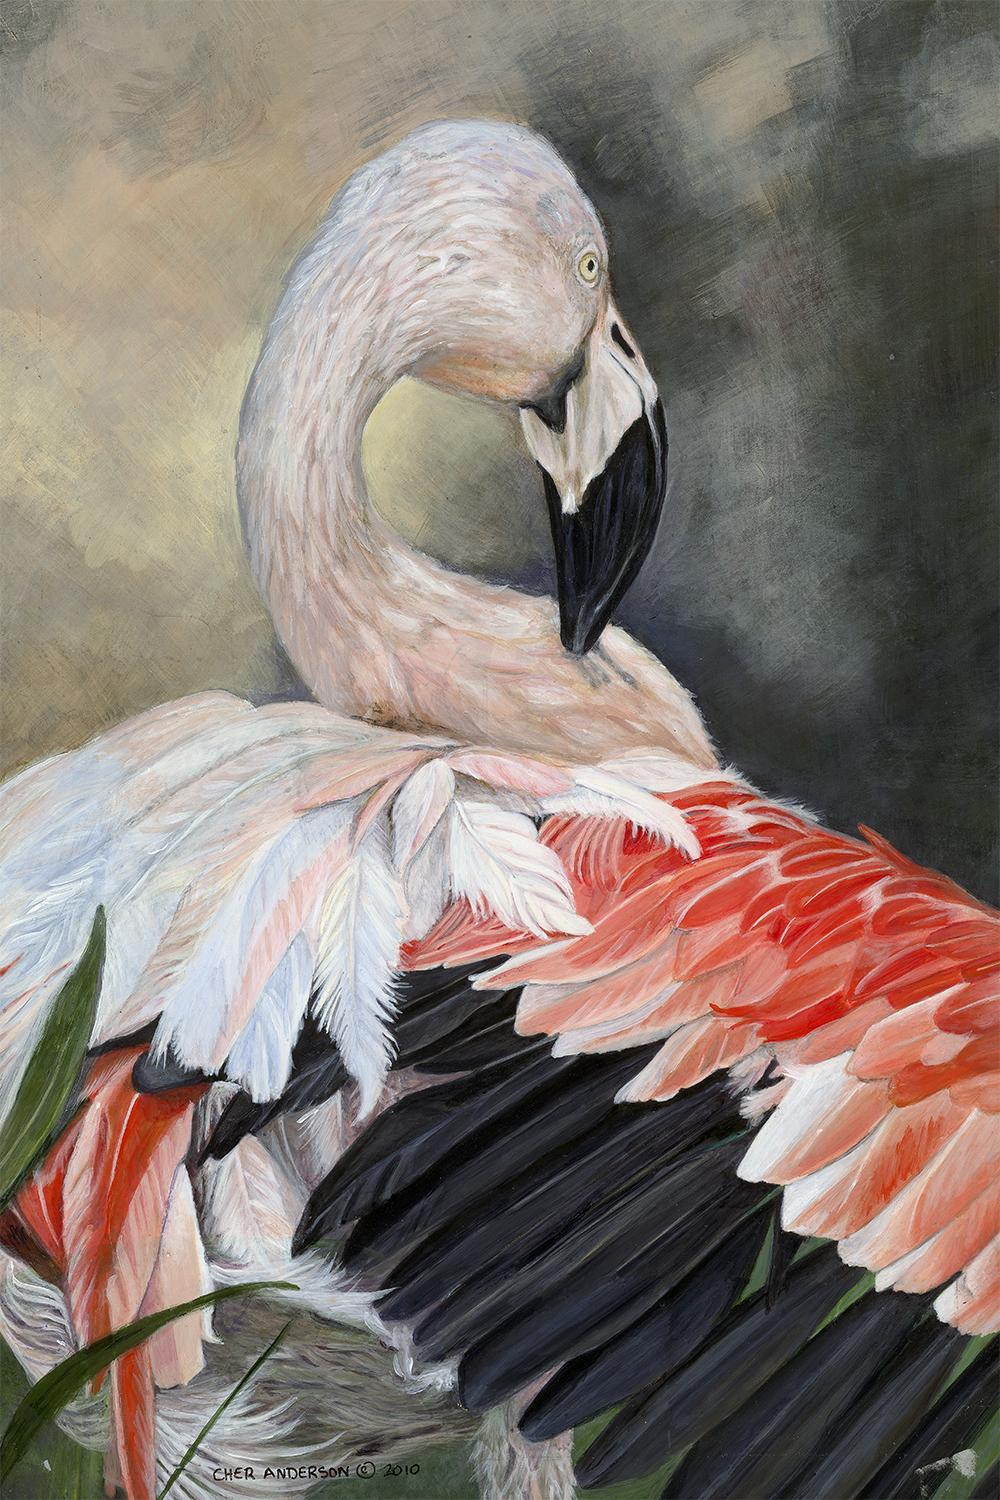   Wallhanging by Cher Anderson   Artists for Conservation